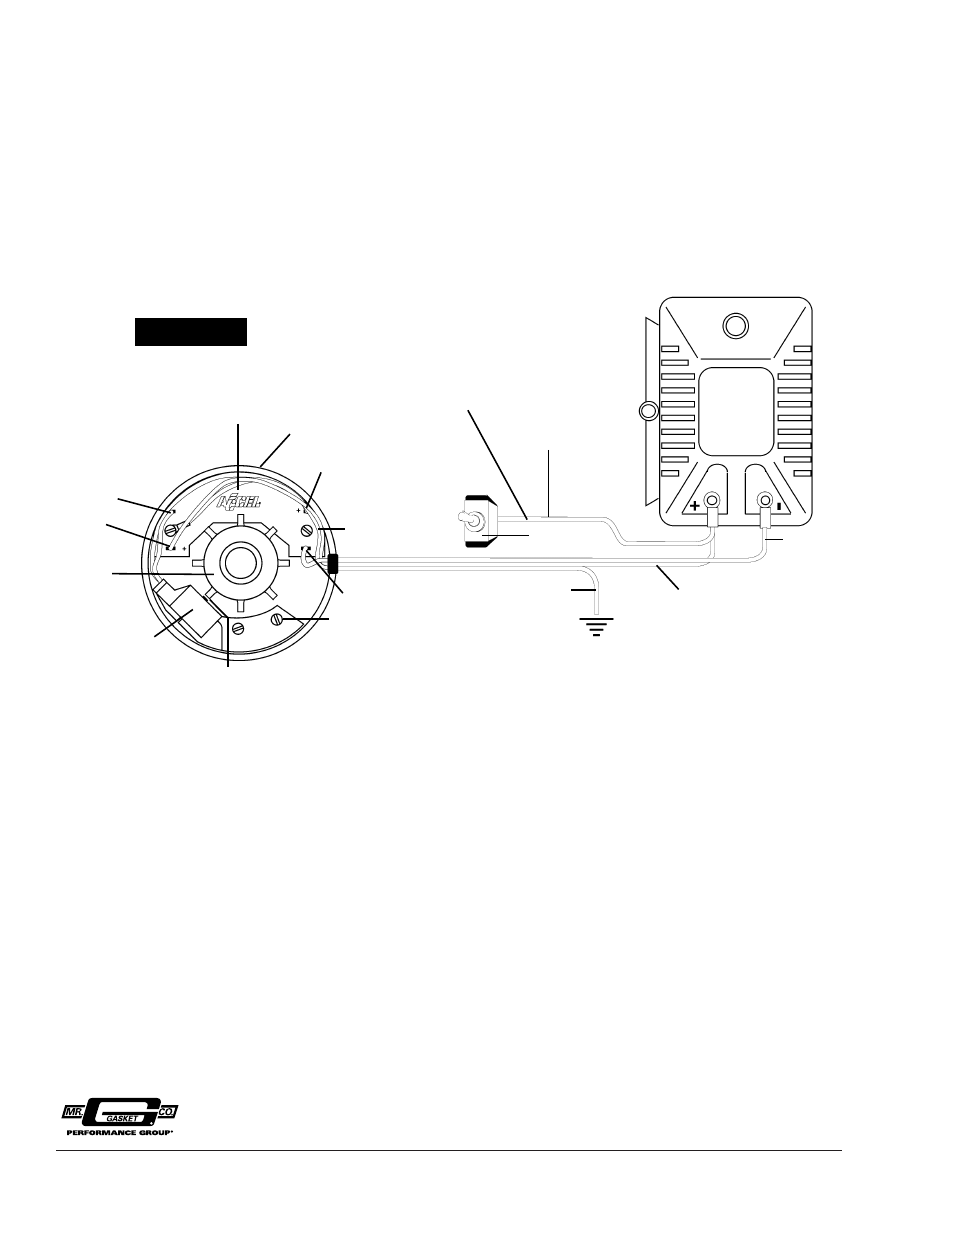 mallory ignition accel magnetic breakerless distributors 71000 page2?resize\\\=665%2C861 accel solenoid wiring diagram accel dfi gen 7, hei ignition accel super coil wiring diagram at crackthecode.co